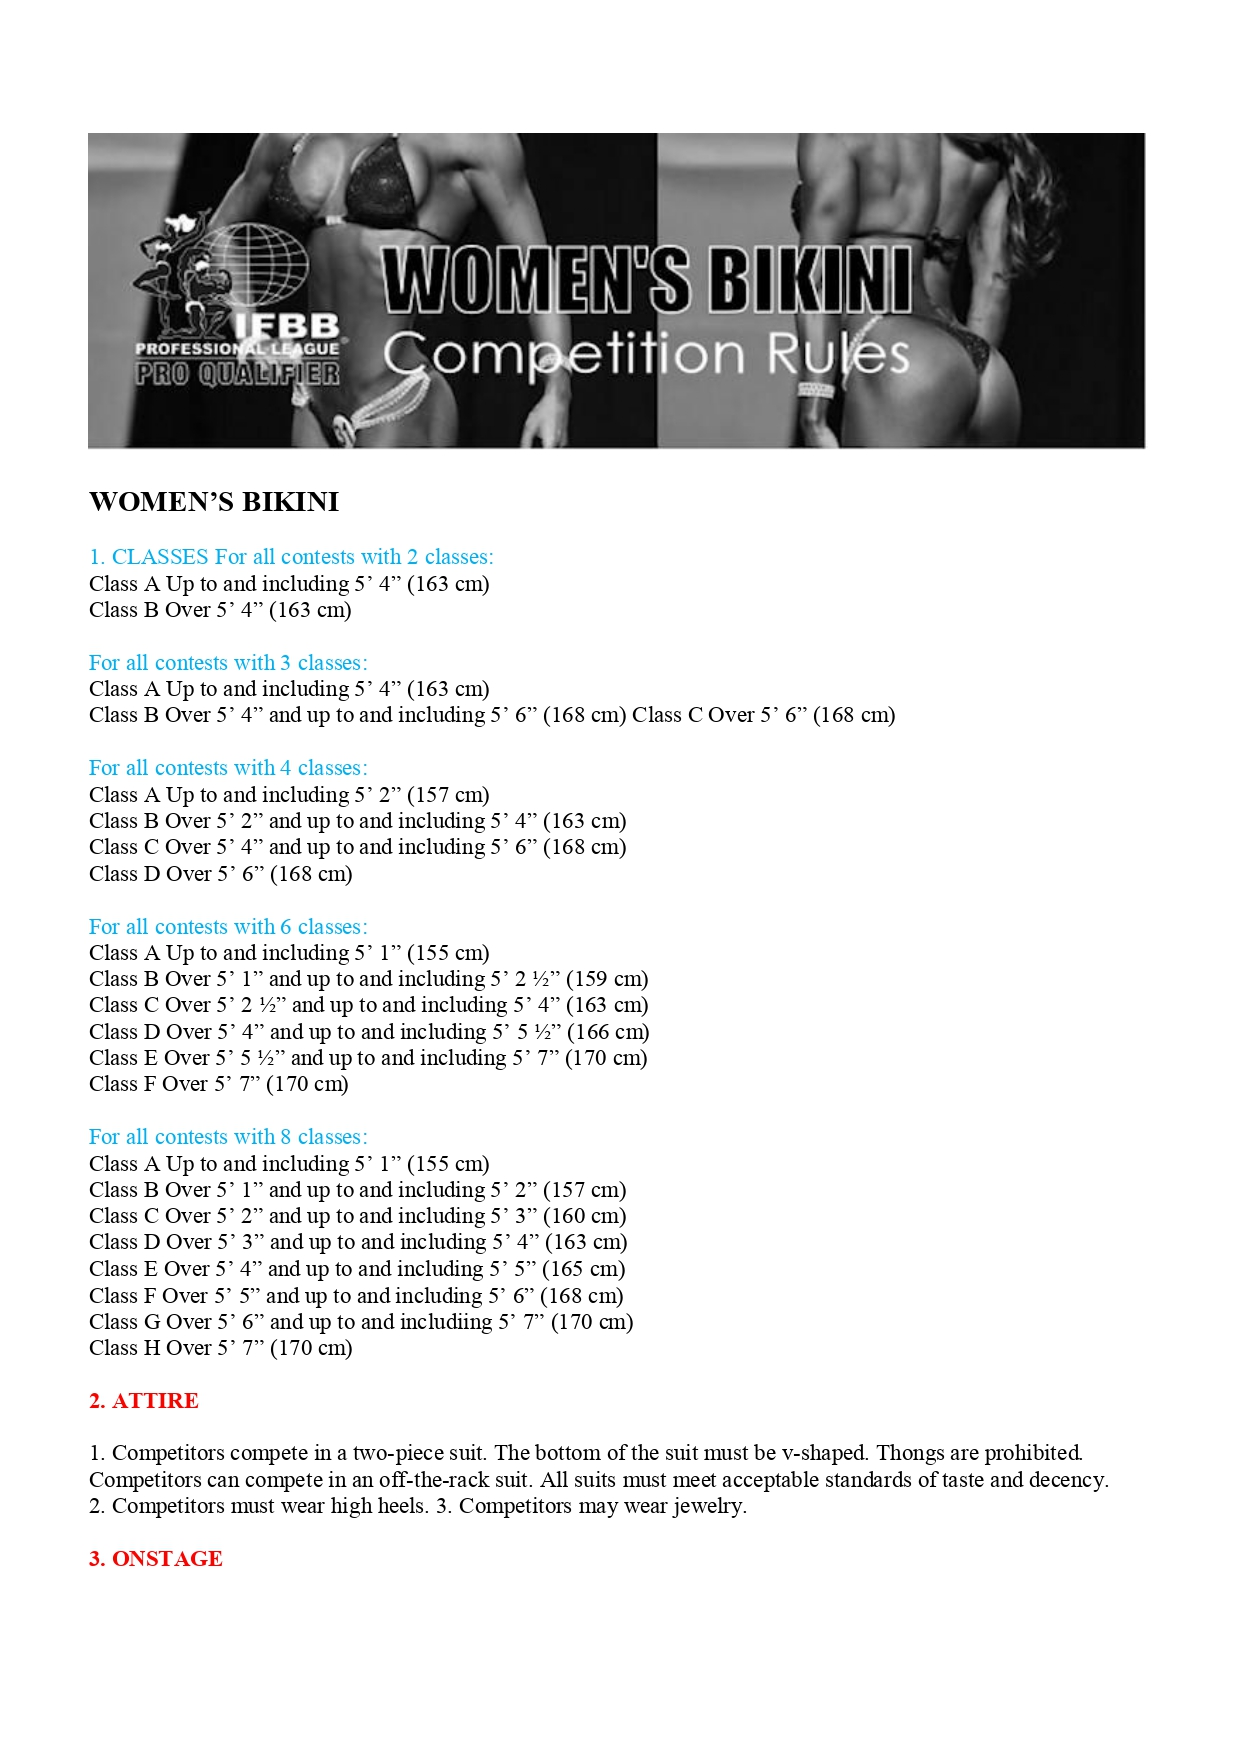 IFBB-rules_page-0012